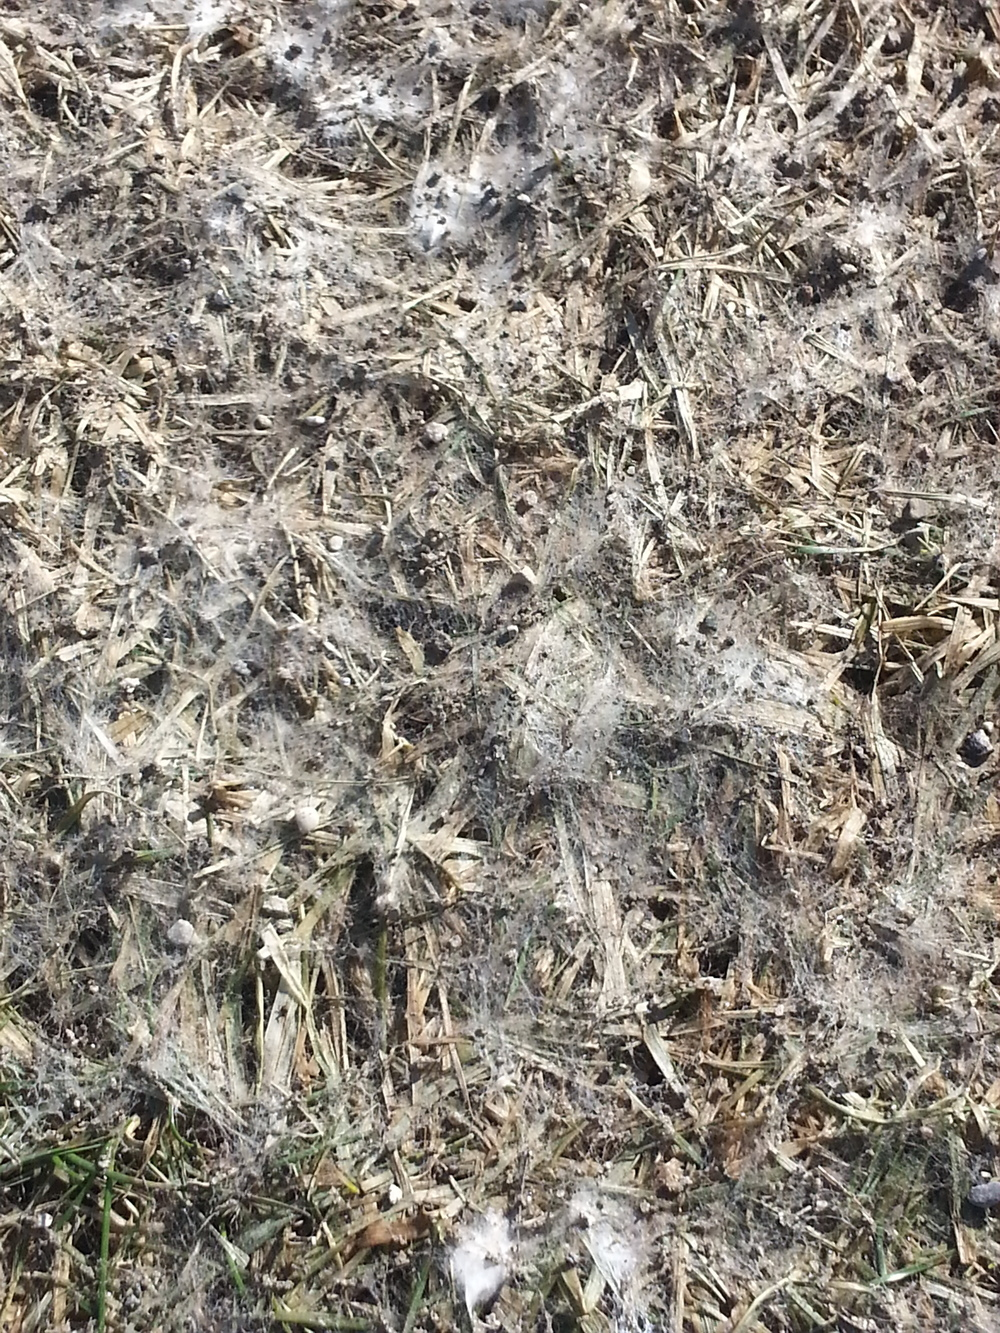 Close-up of Snow Mold